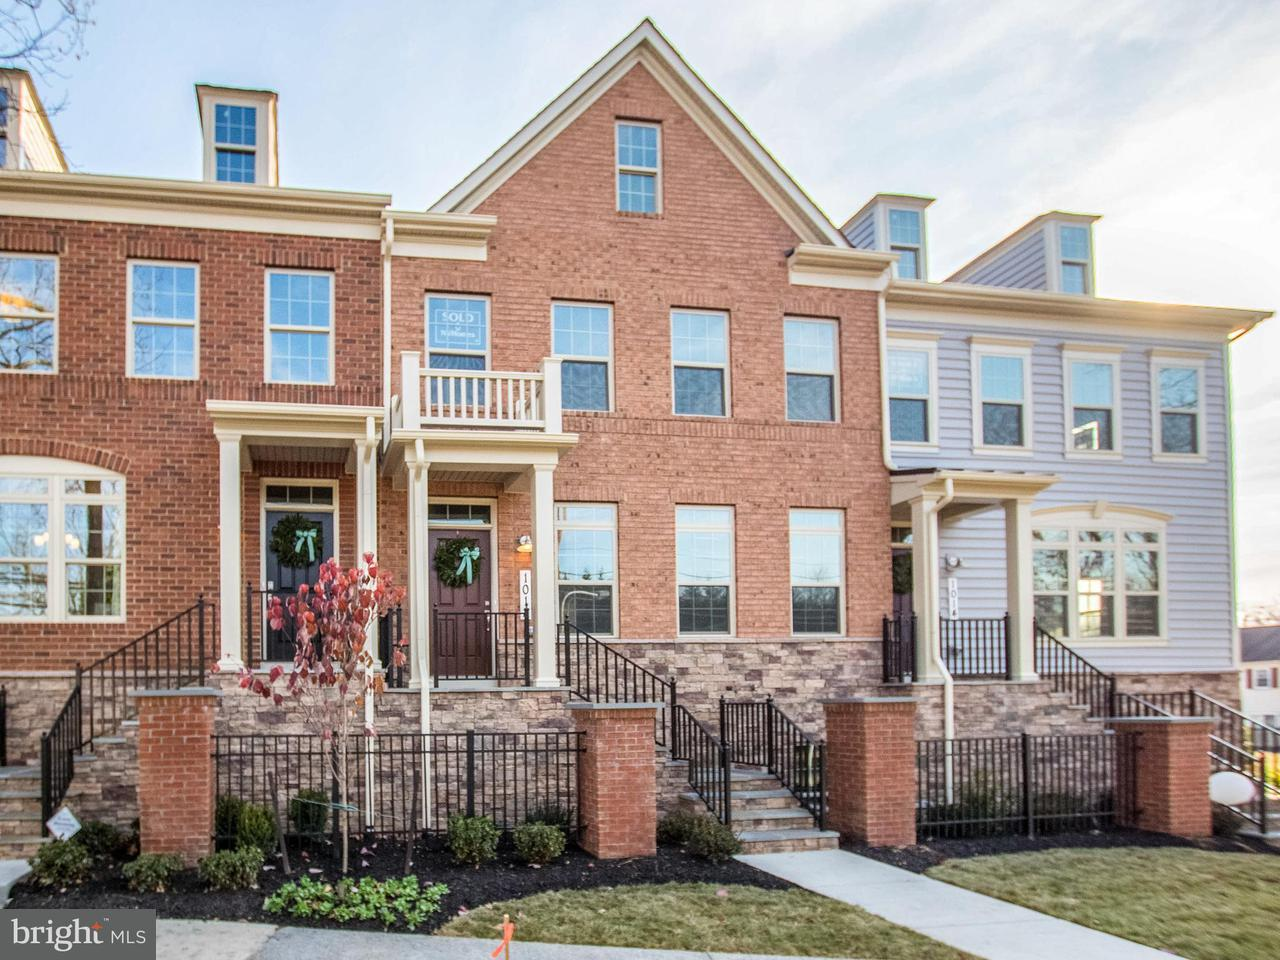 Townhouse for Sale at 1010 OLNEY SANDY SPRING Road 1010 OLNEY SANDY SPRING Road Sandy Spring, Maryland 20860 United States